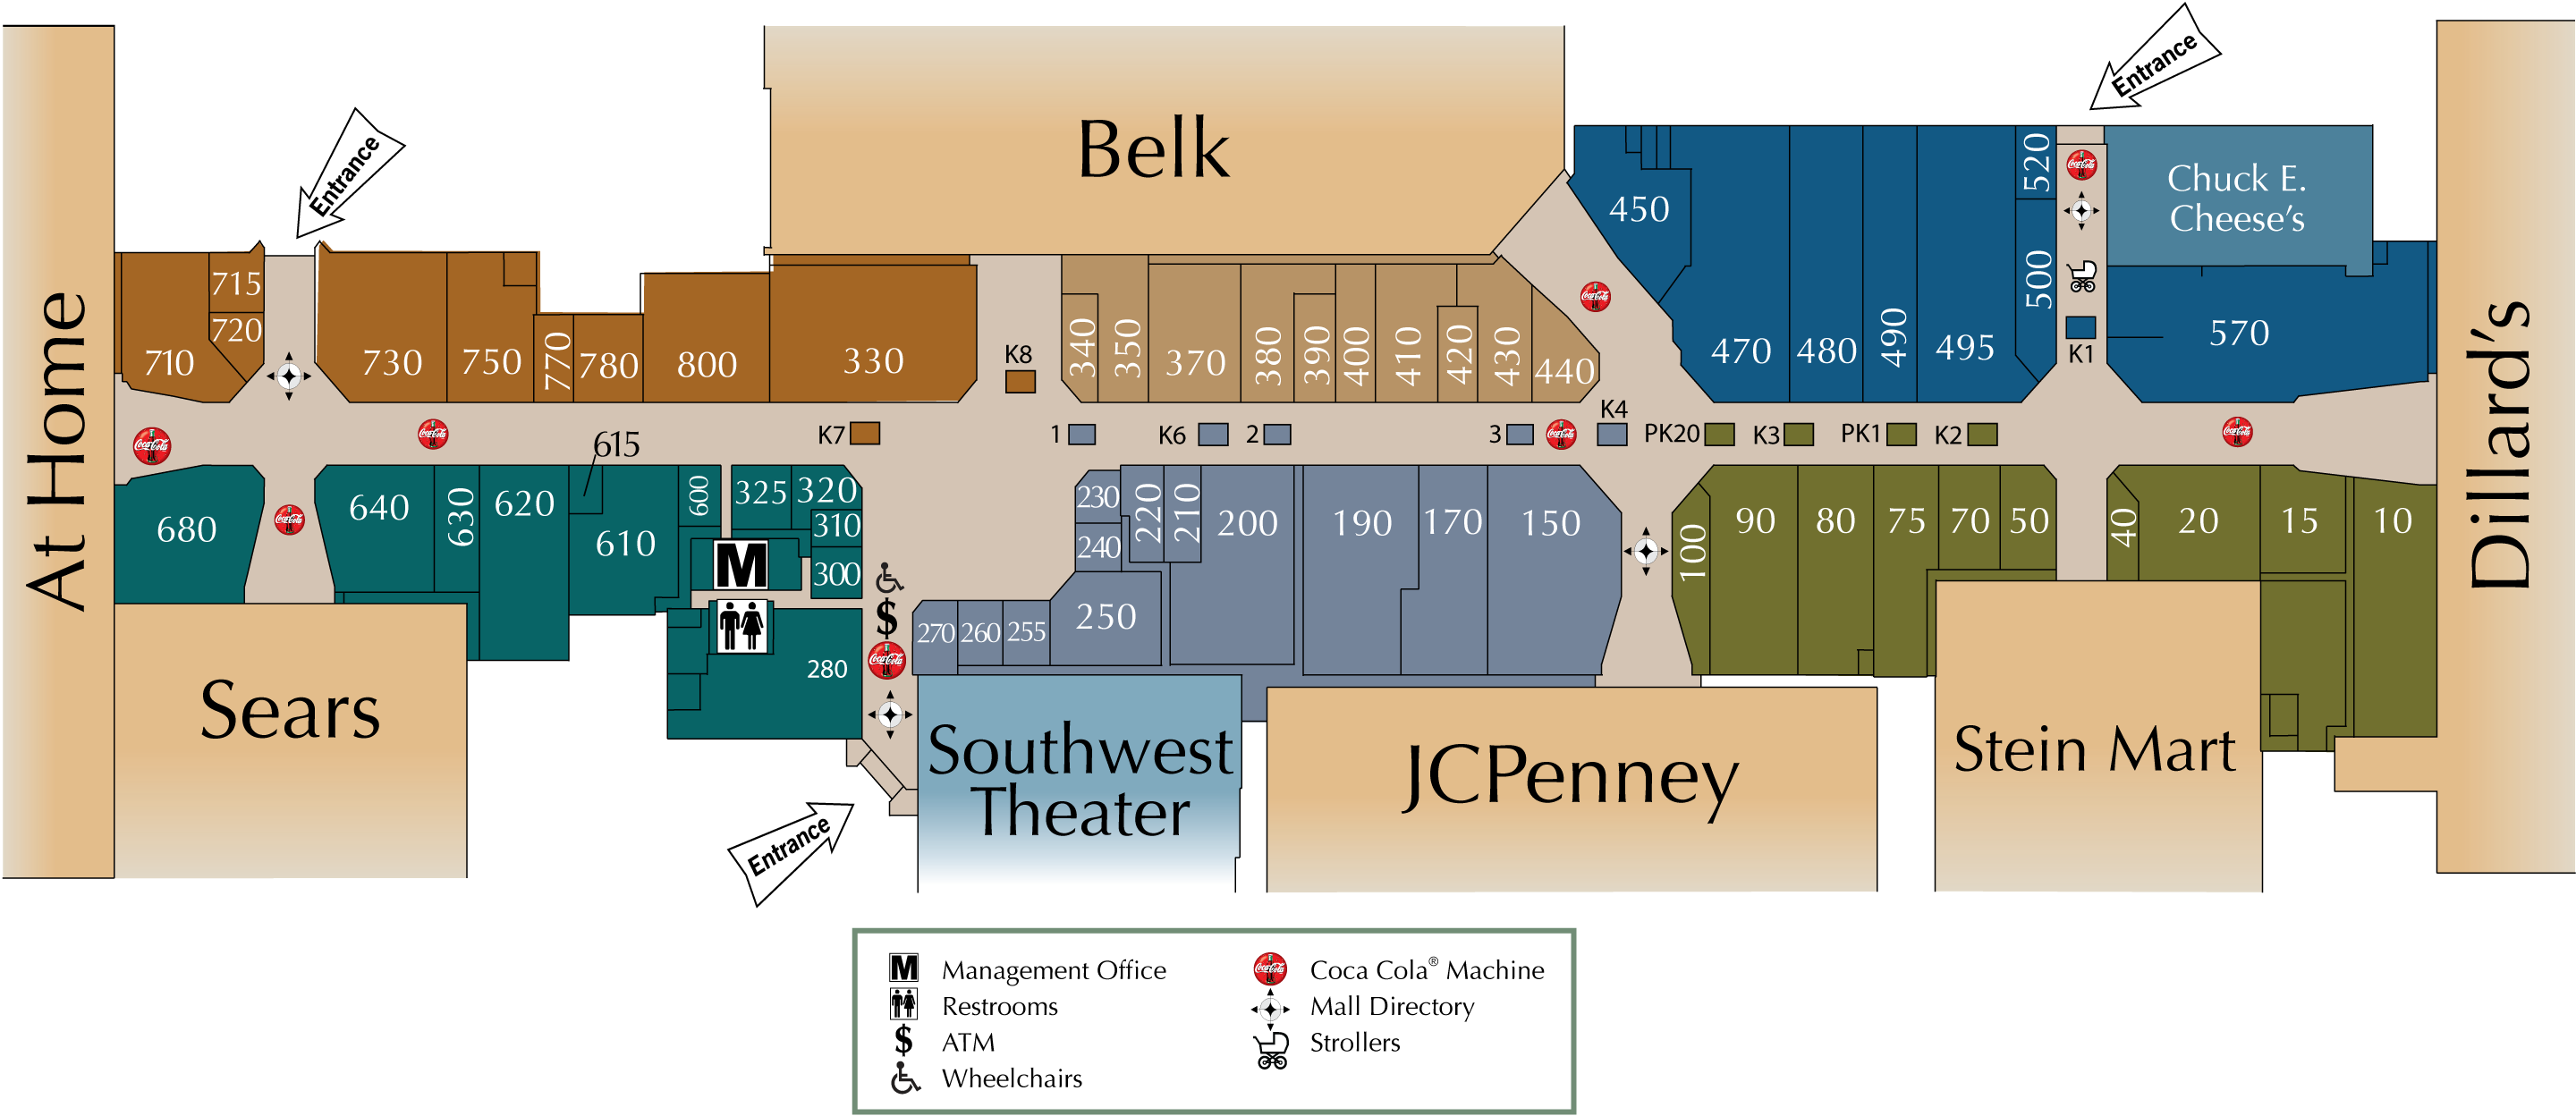 Pecanland Mall Map Lakeforest Mall Map | compressportnederland Pecanland Mall Map